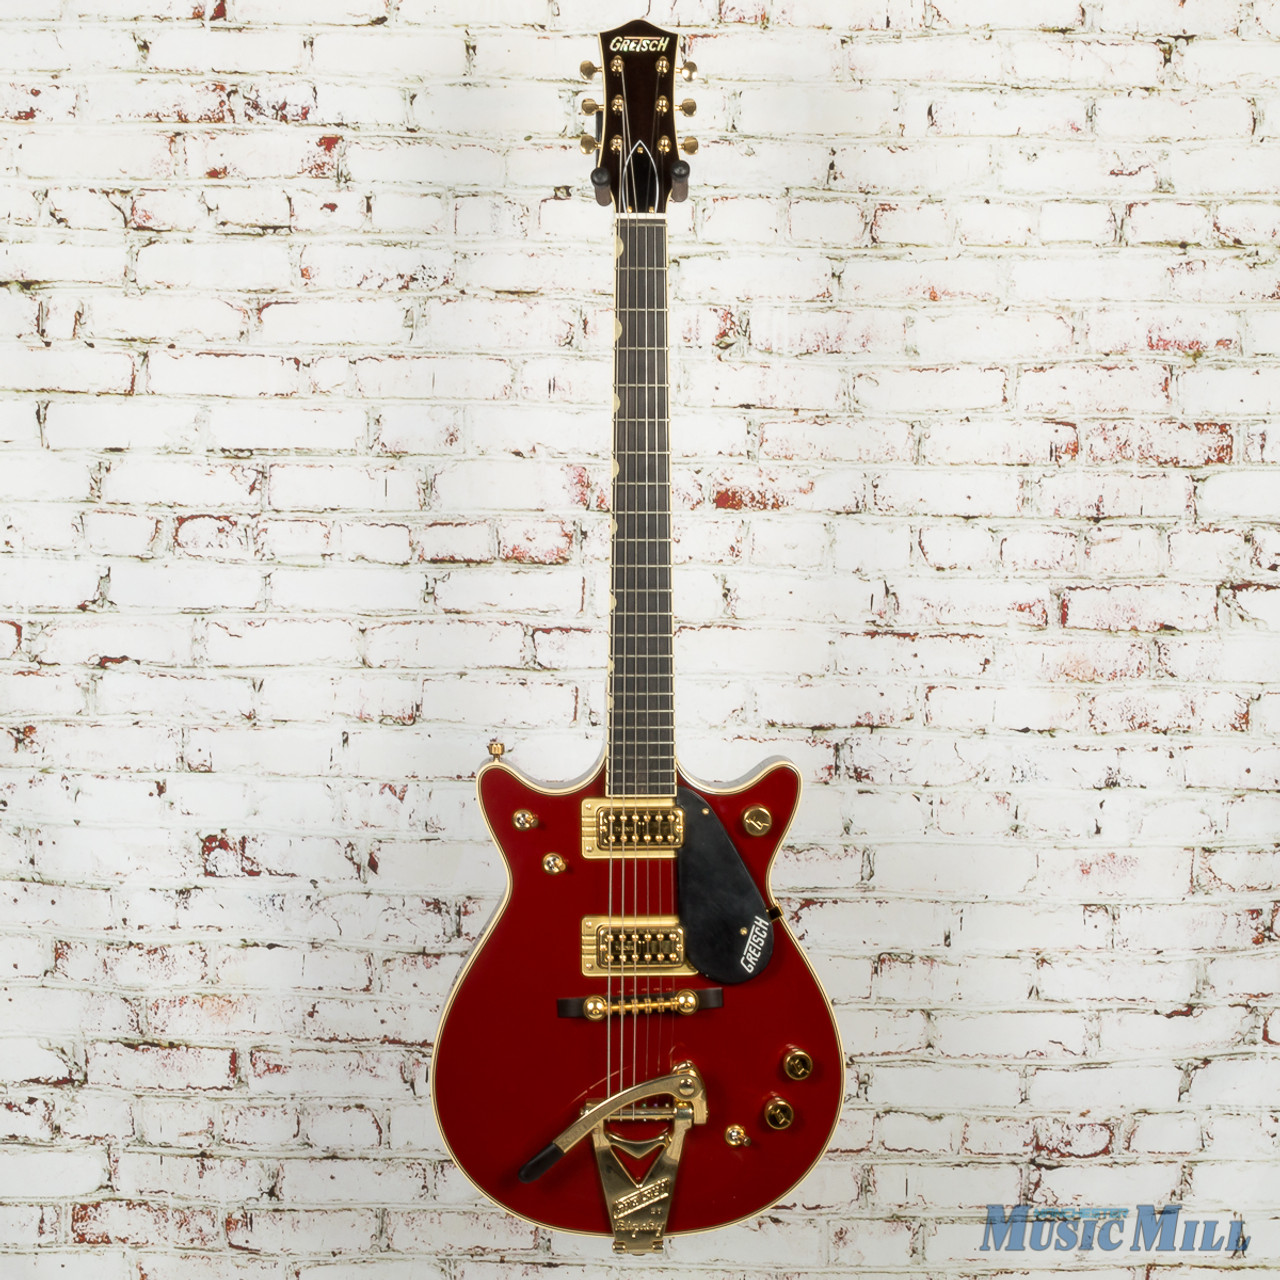 921e3acabef Gretsch G6131T-62 Vintage Select Edition '62 Duo Jet Electric Guitar  Firebird Red